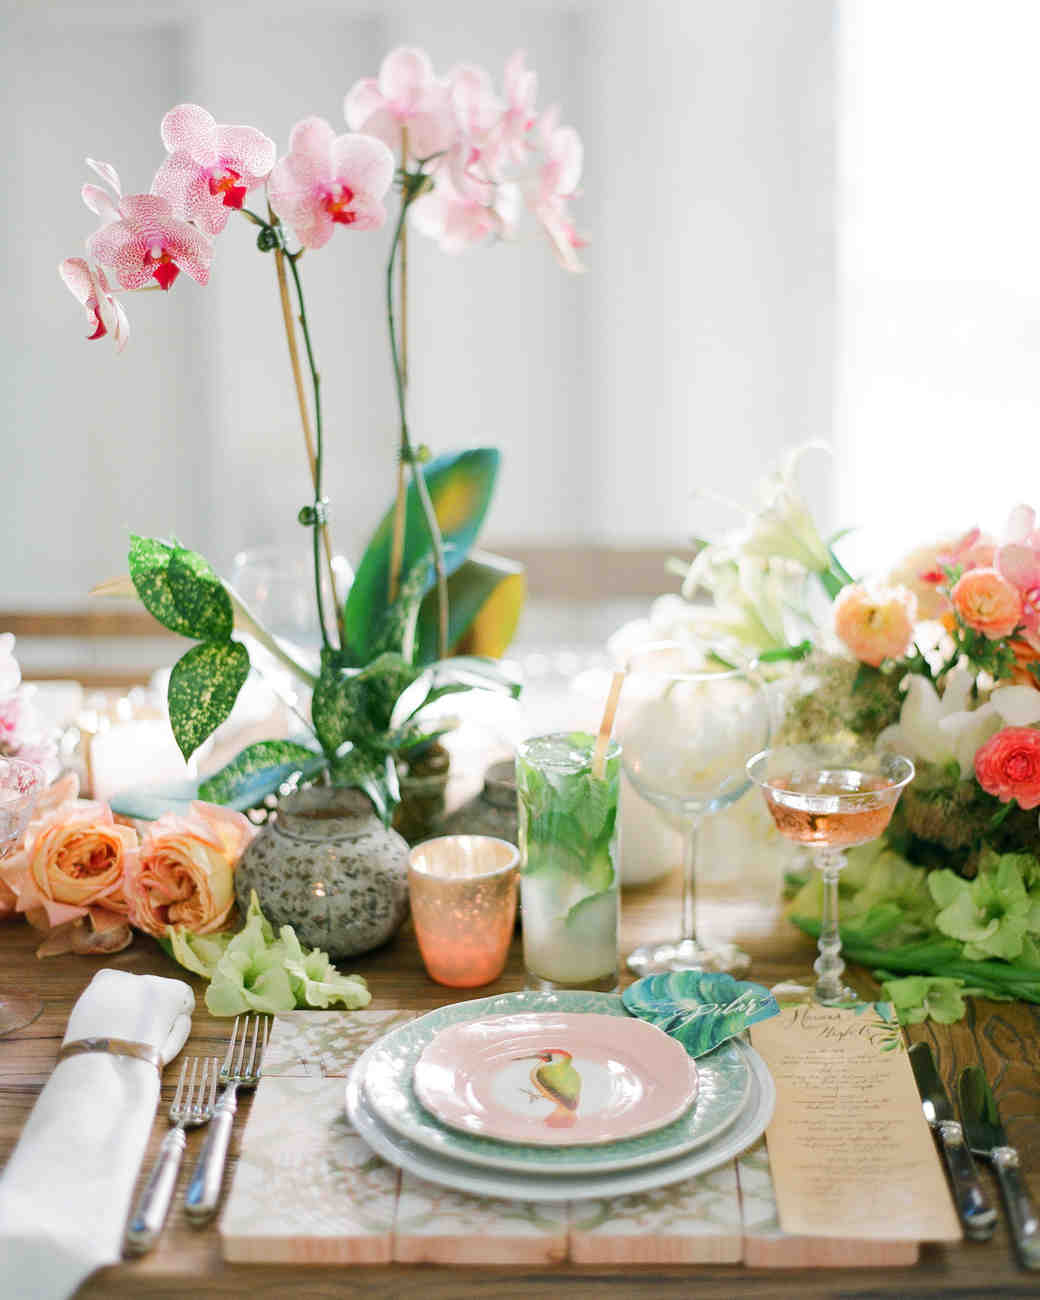 Tropical Place Setting with Orchids and Patterned Plates & Island Time: 33 Tropical Wedding Ideas We Love | Martha Stewart ...